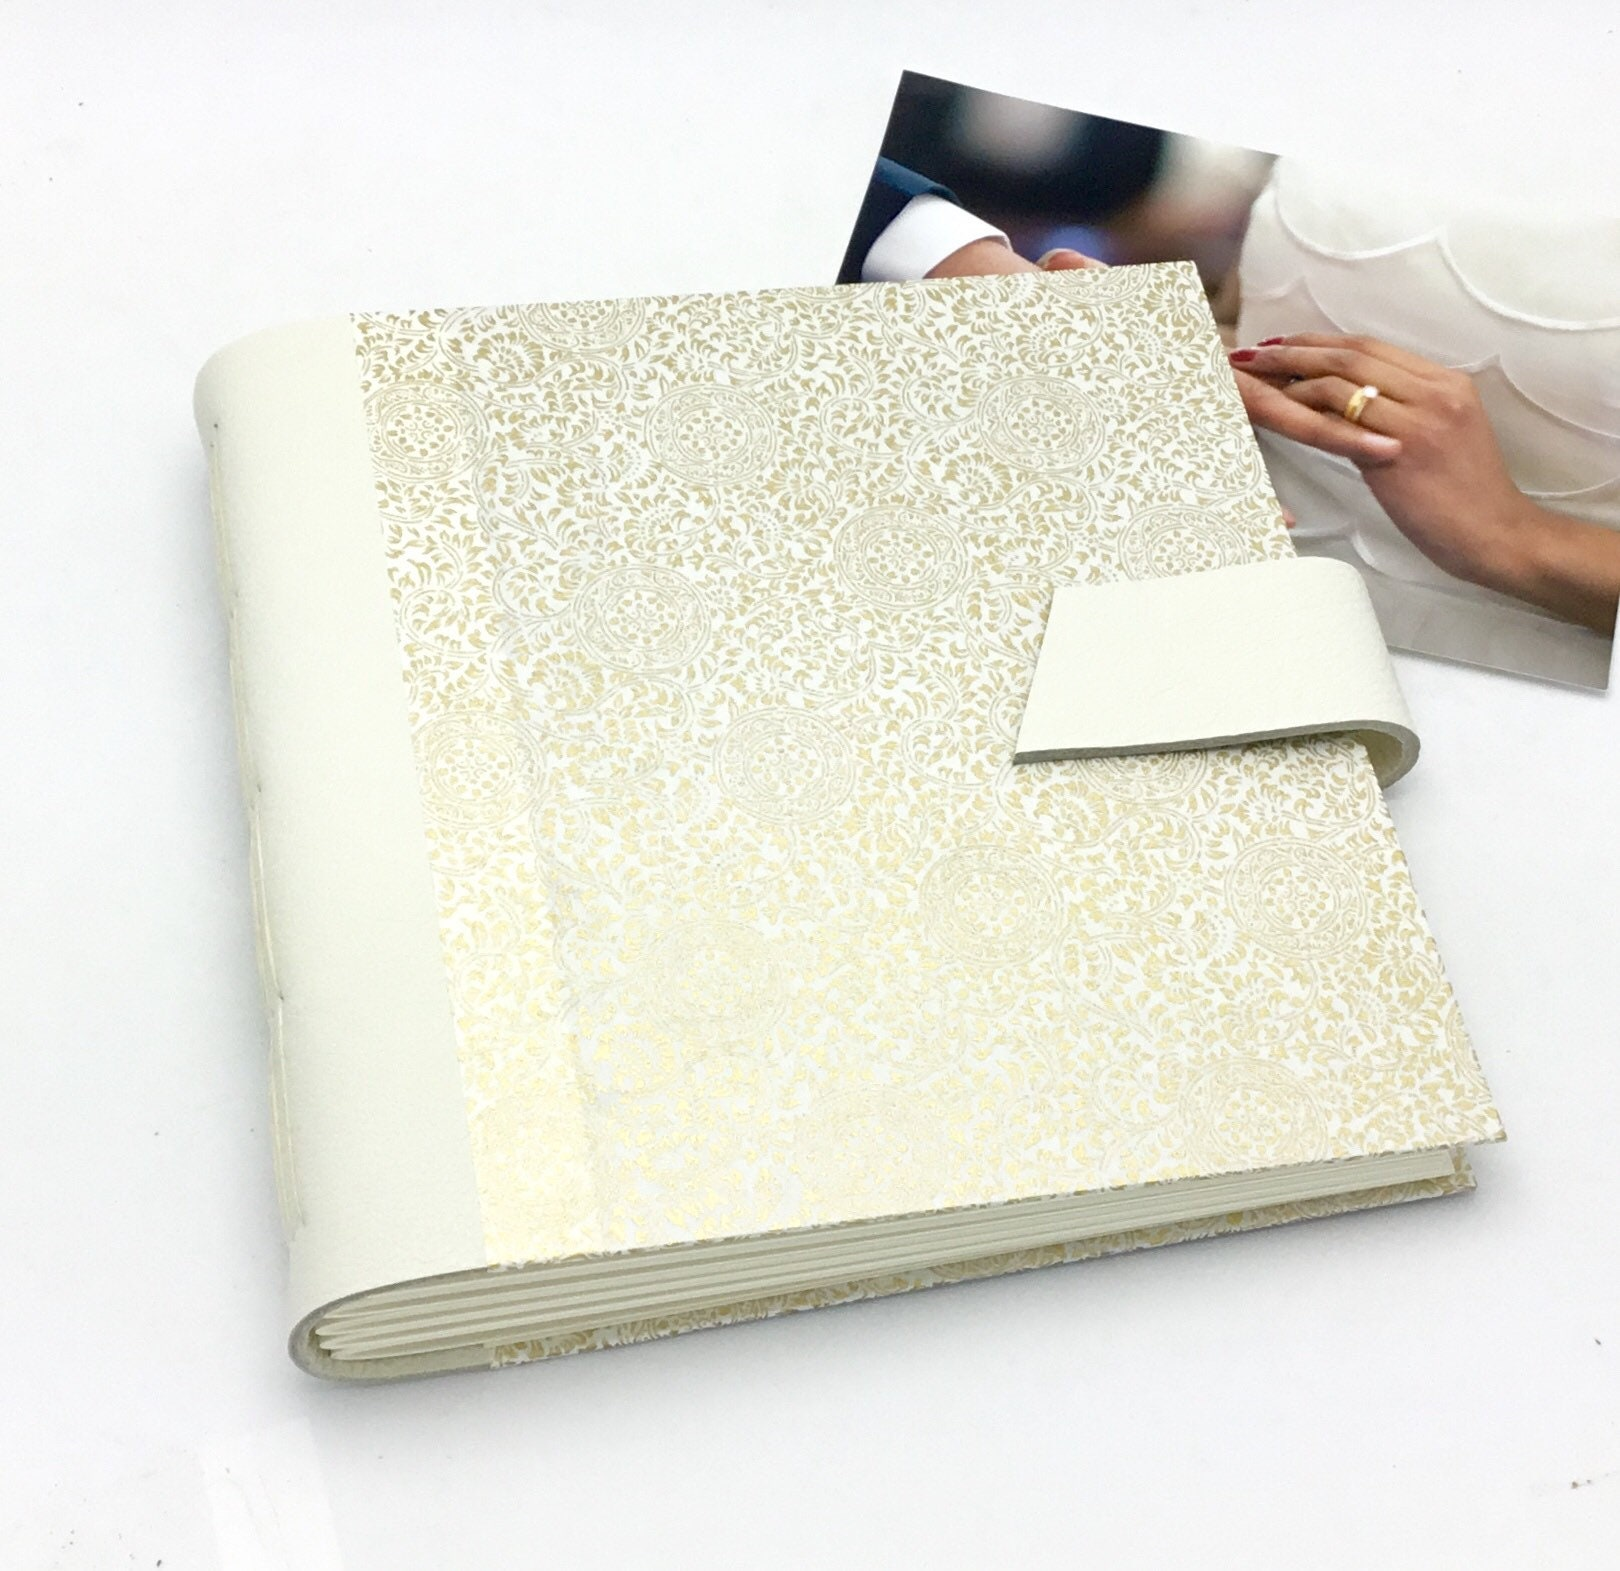 Wedding Scrapbook Album 8x8 Inch Ivory Leather And Gold